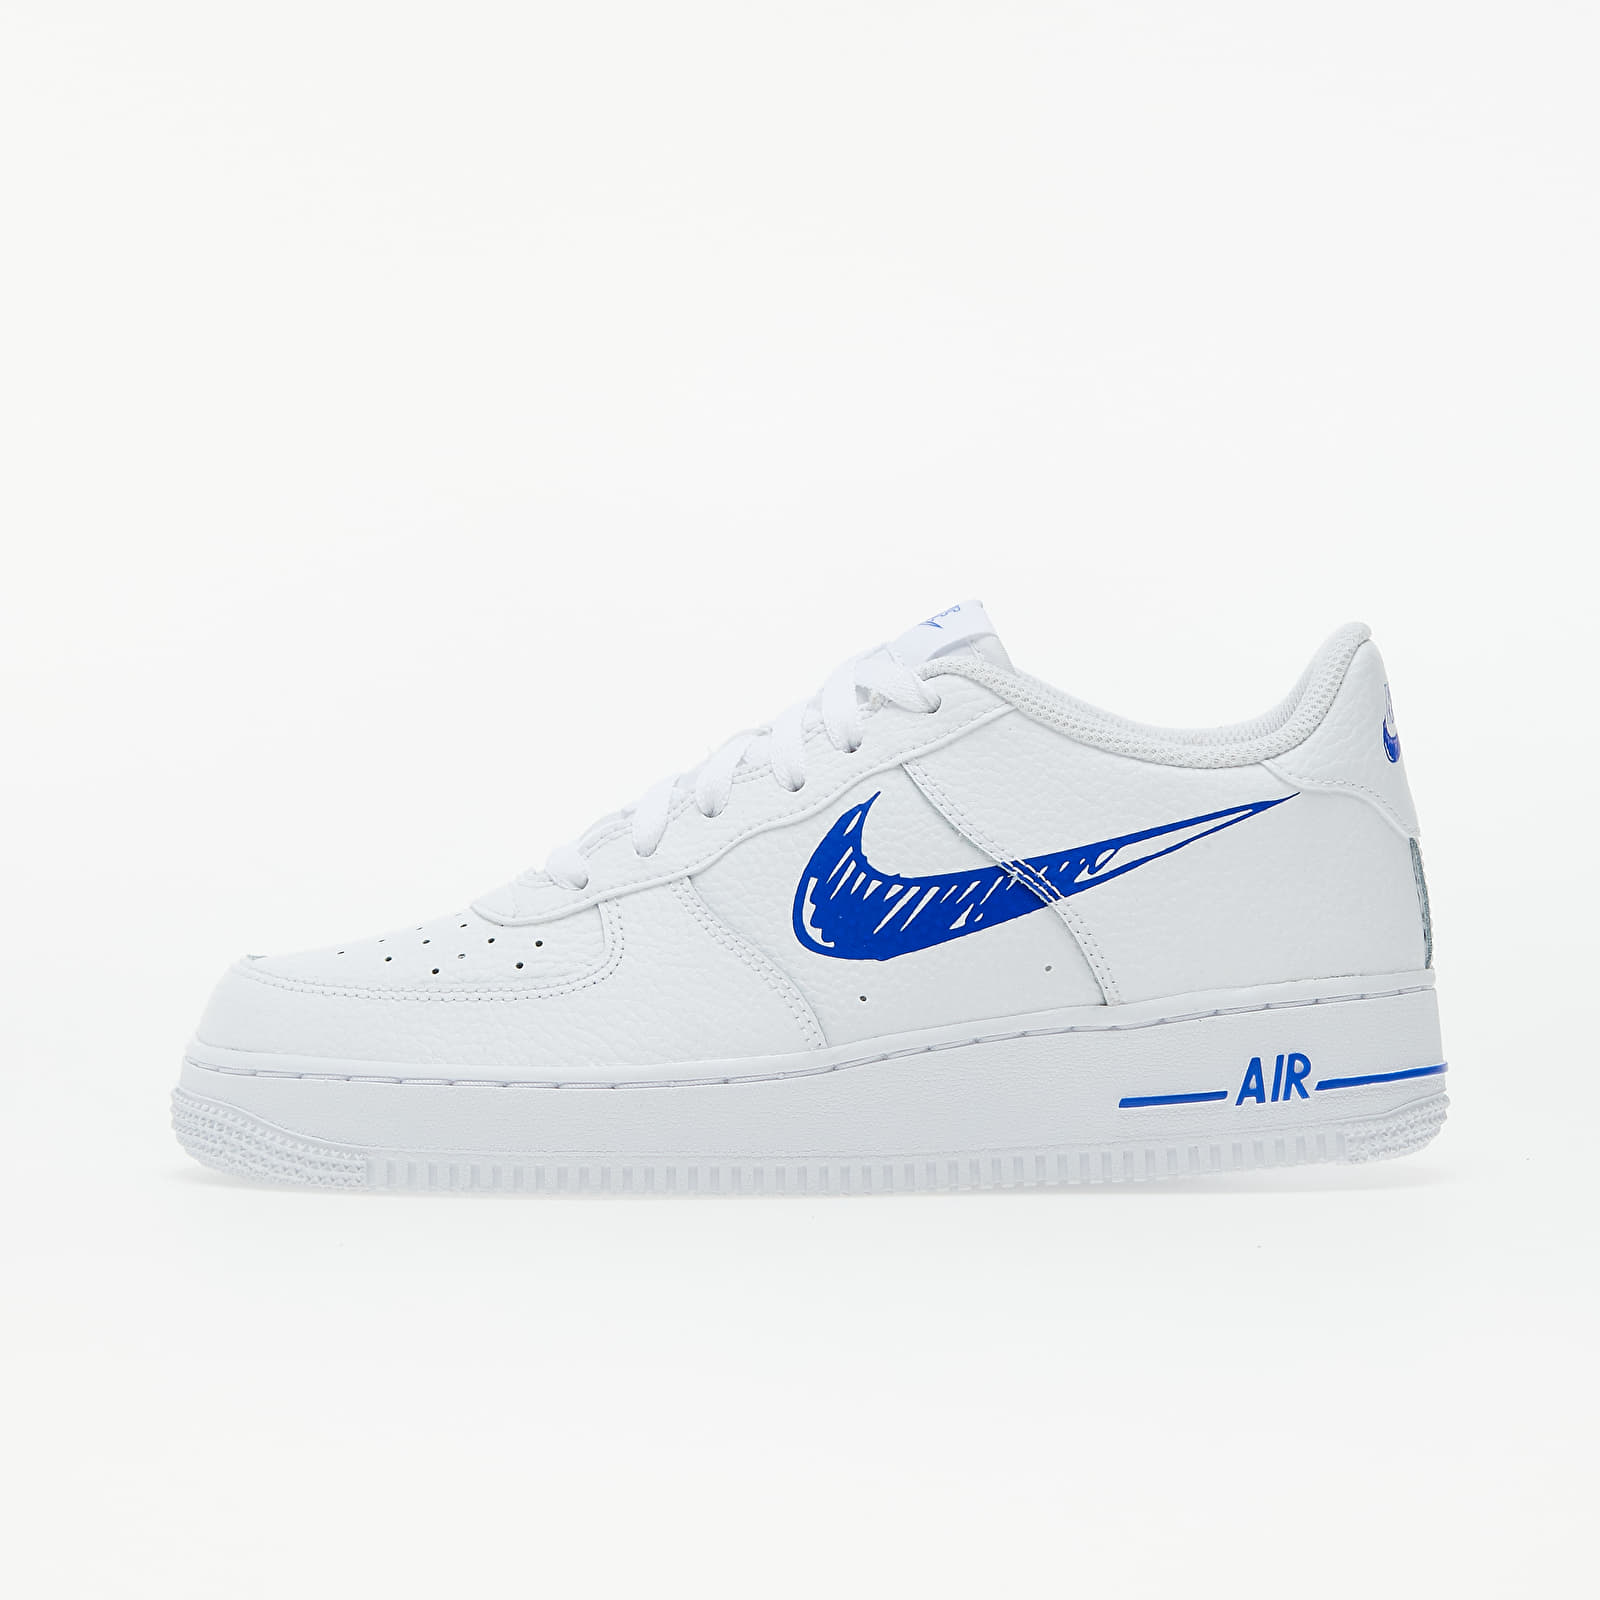 Nike Air Force 1 Low GS White/ Racer Blue-White EUR 37.5